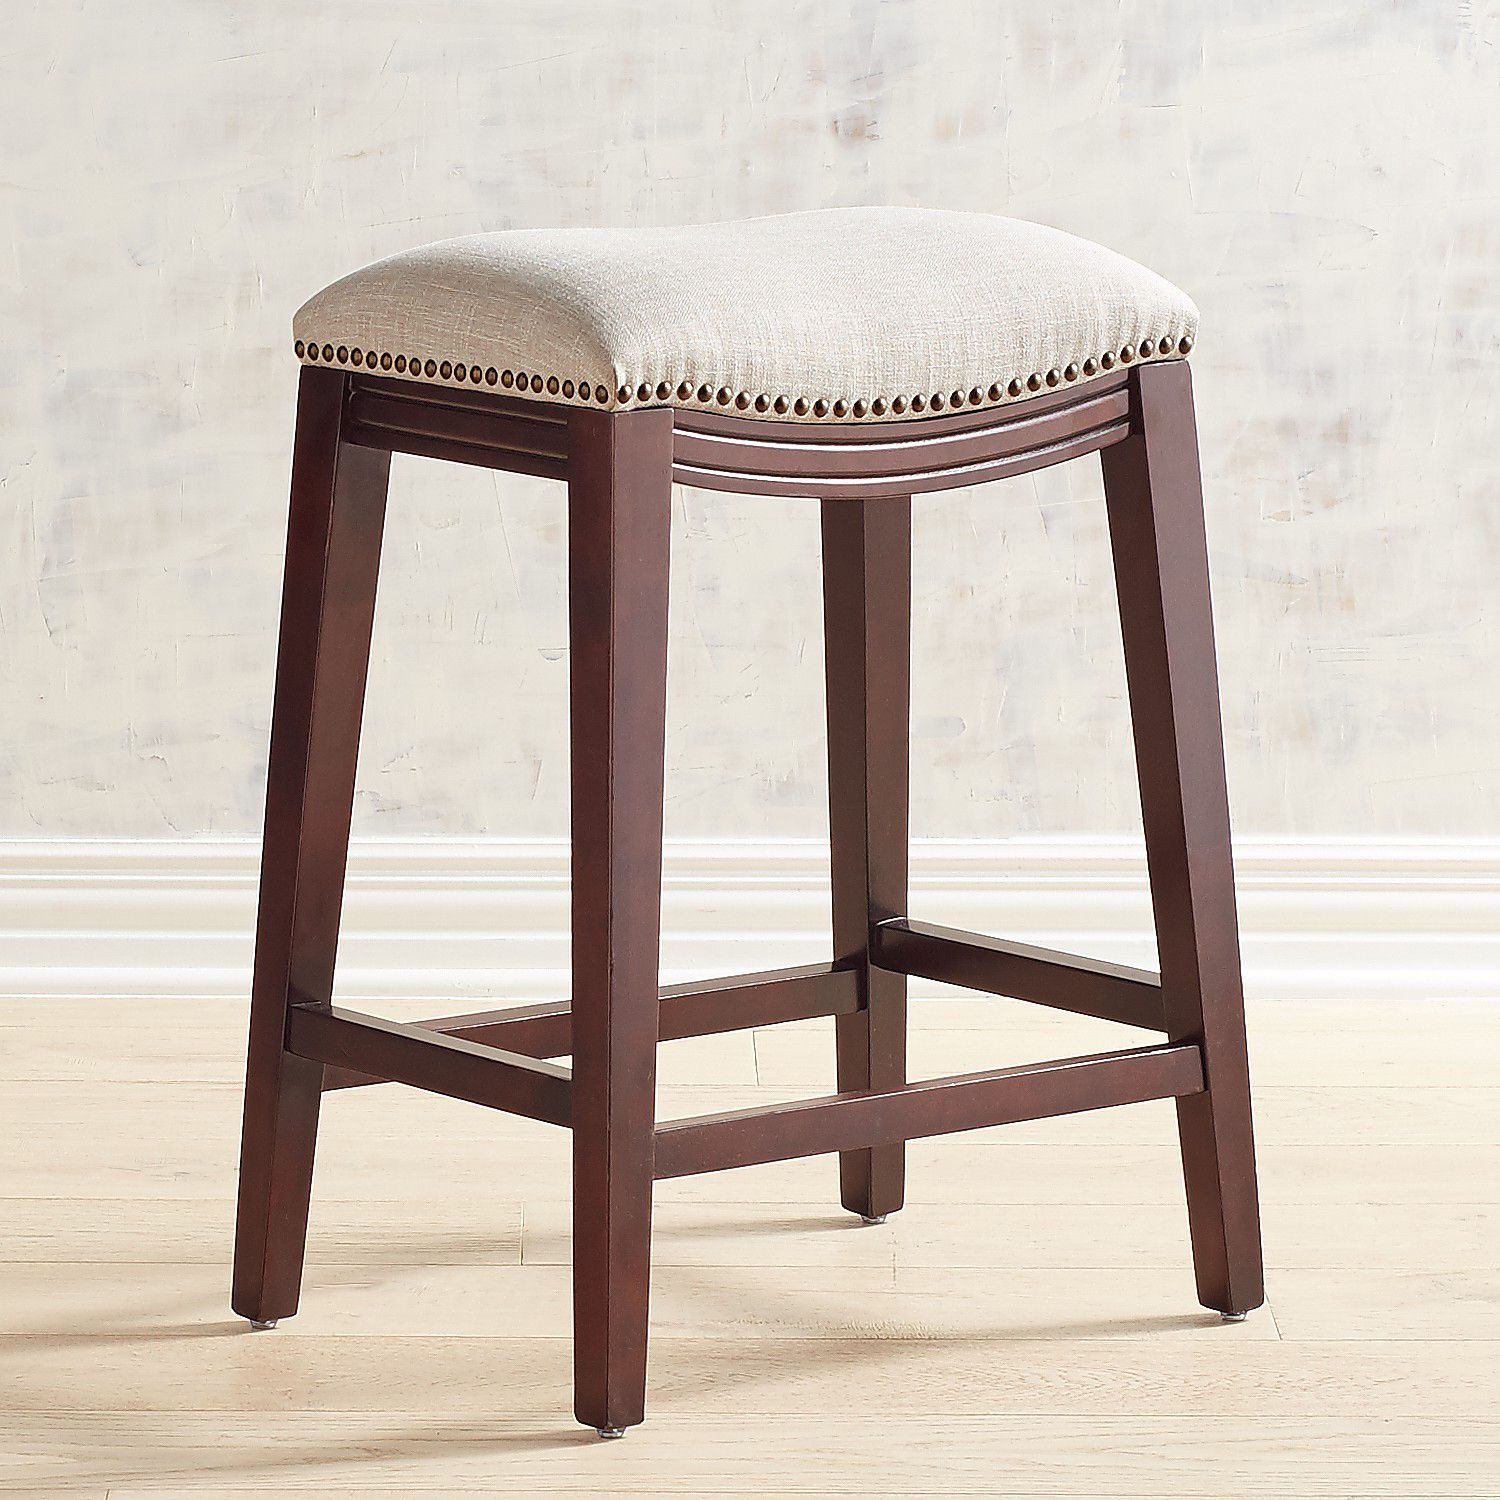 Super Halsted Poet Flax Upholstered Backless Counter Stool With Beatyapartments Chair Design Images Beatyapartmentscom